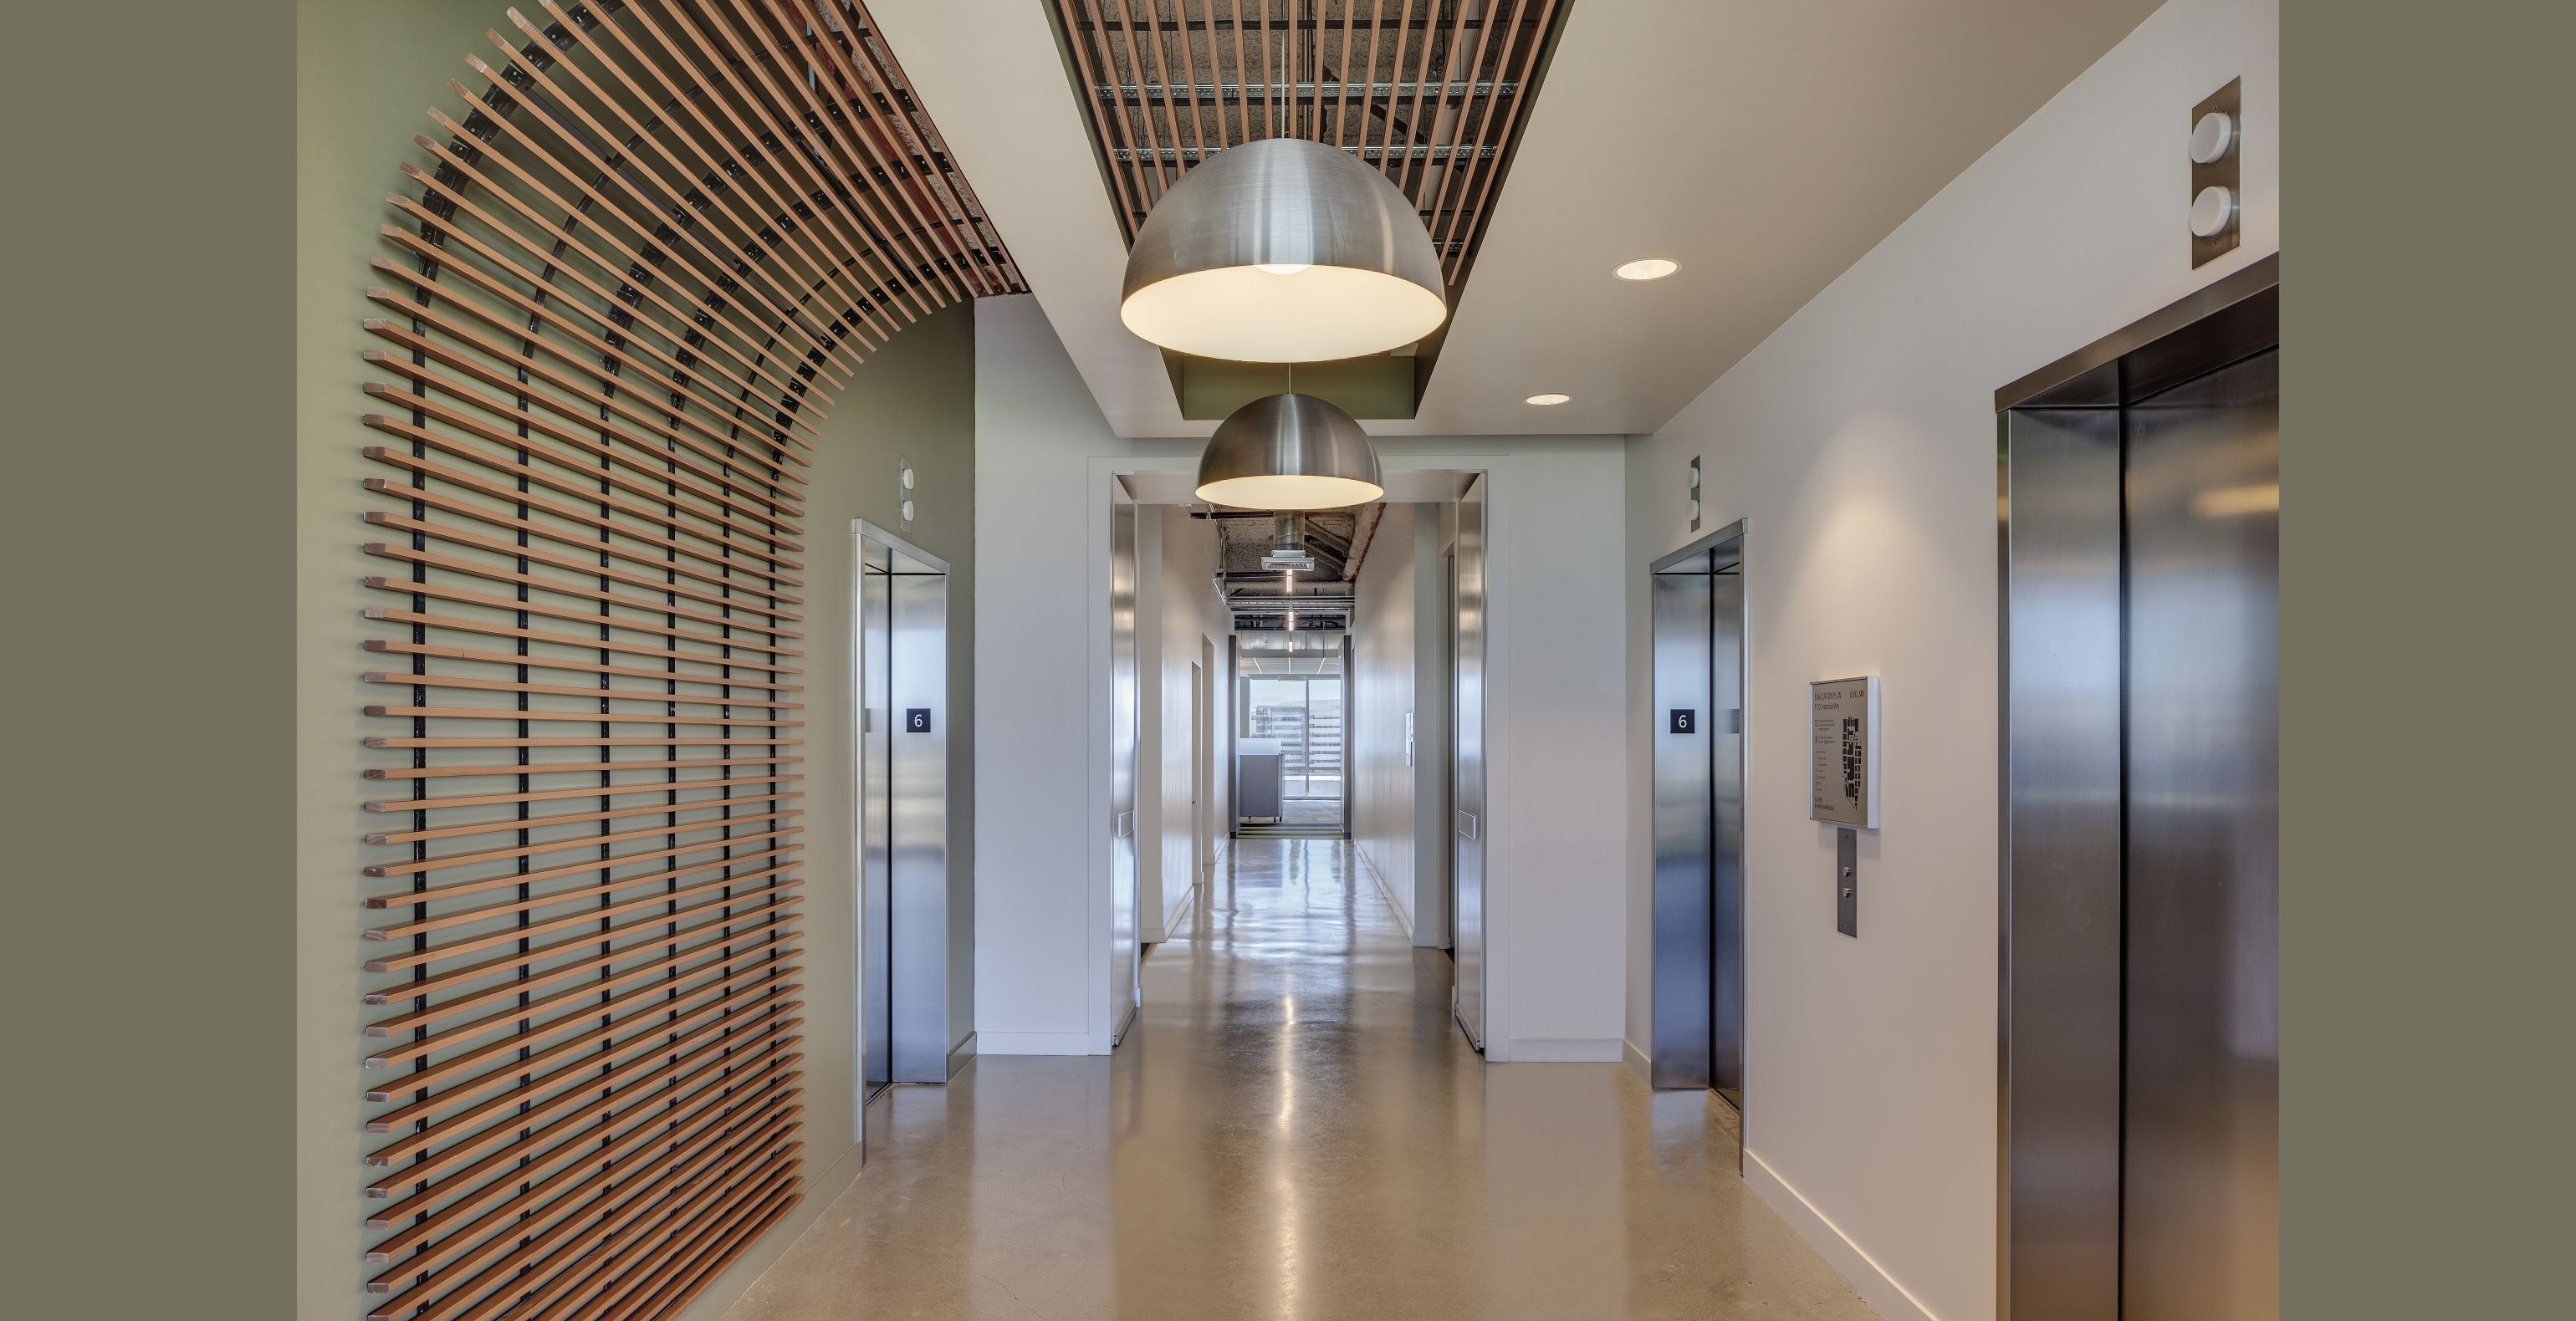 Commercial Ceiling And Wall Systems Idea U0026 Photo Gallery · Hallway CeilingWood  Slat ...